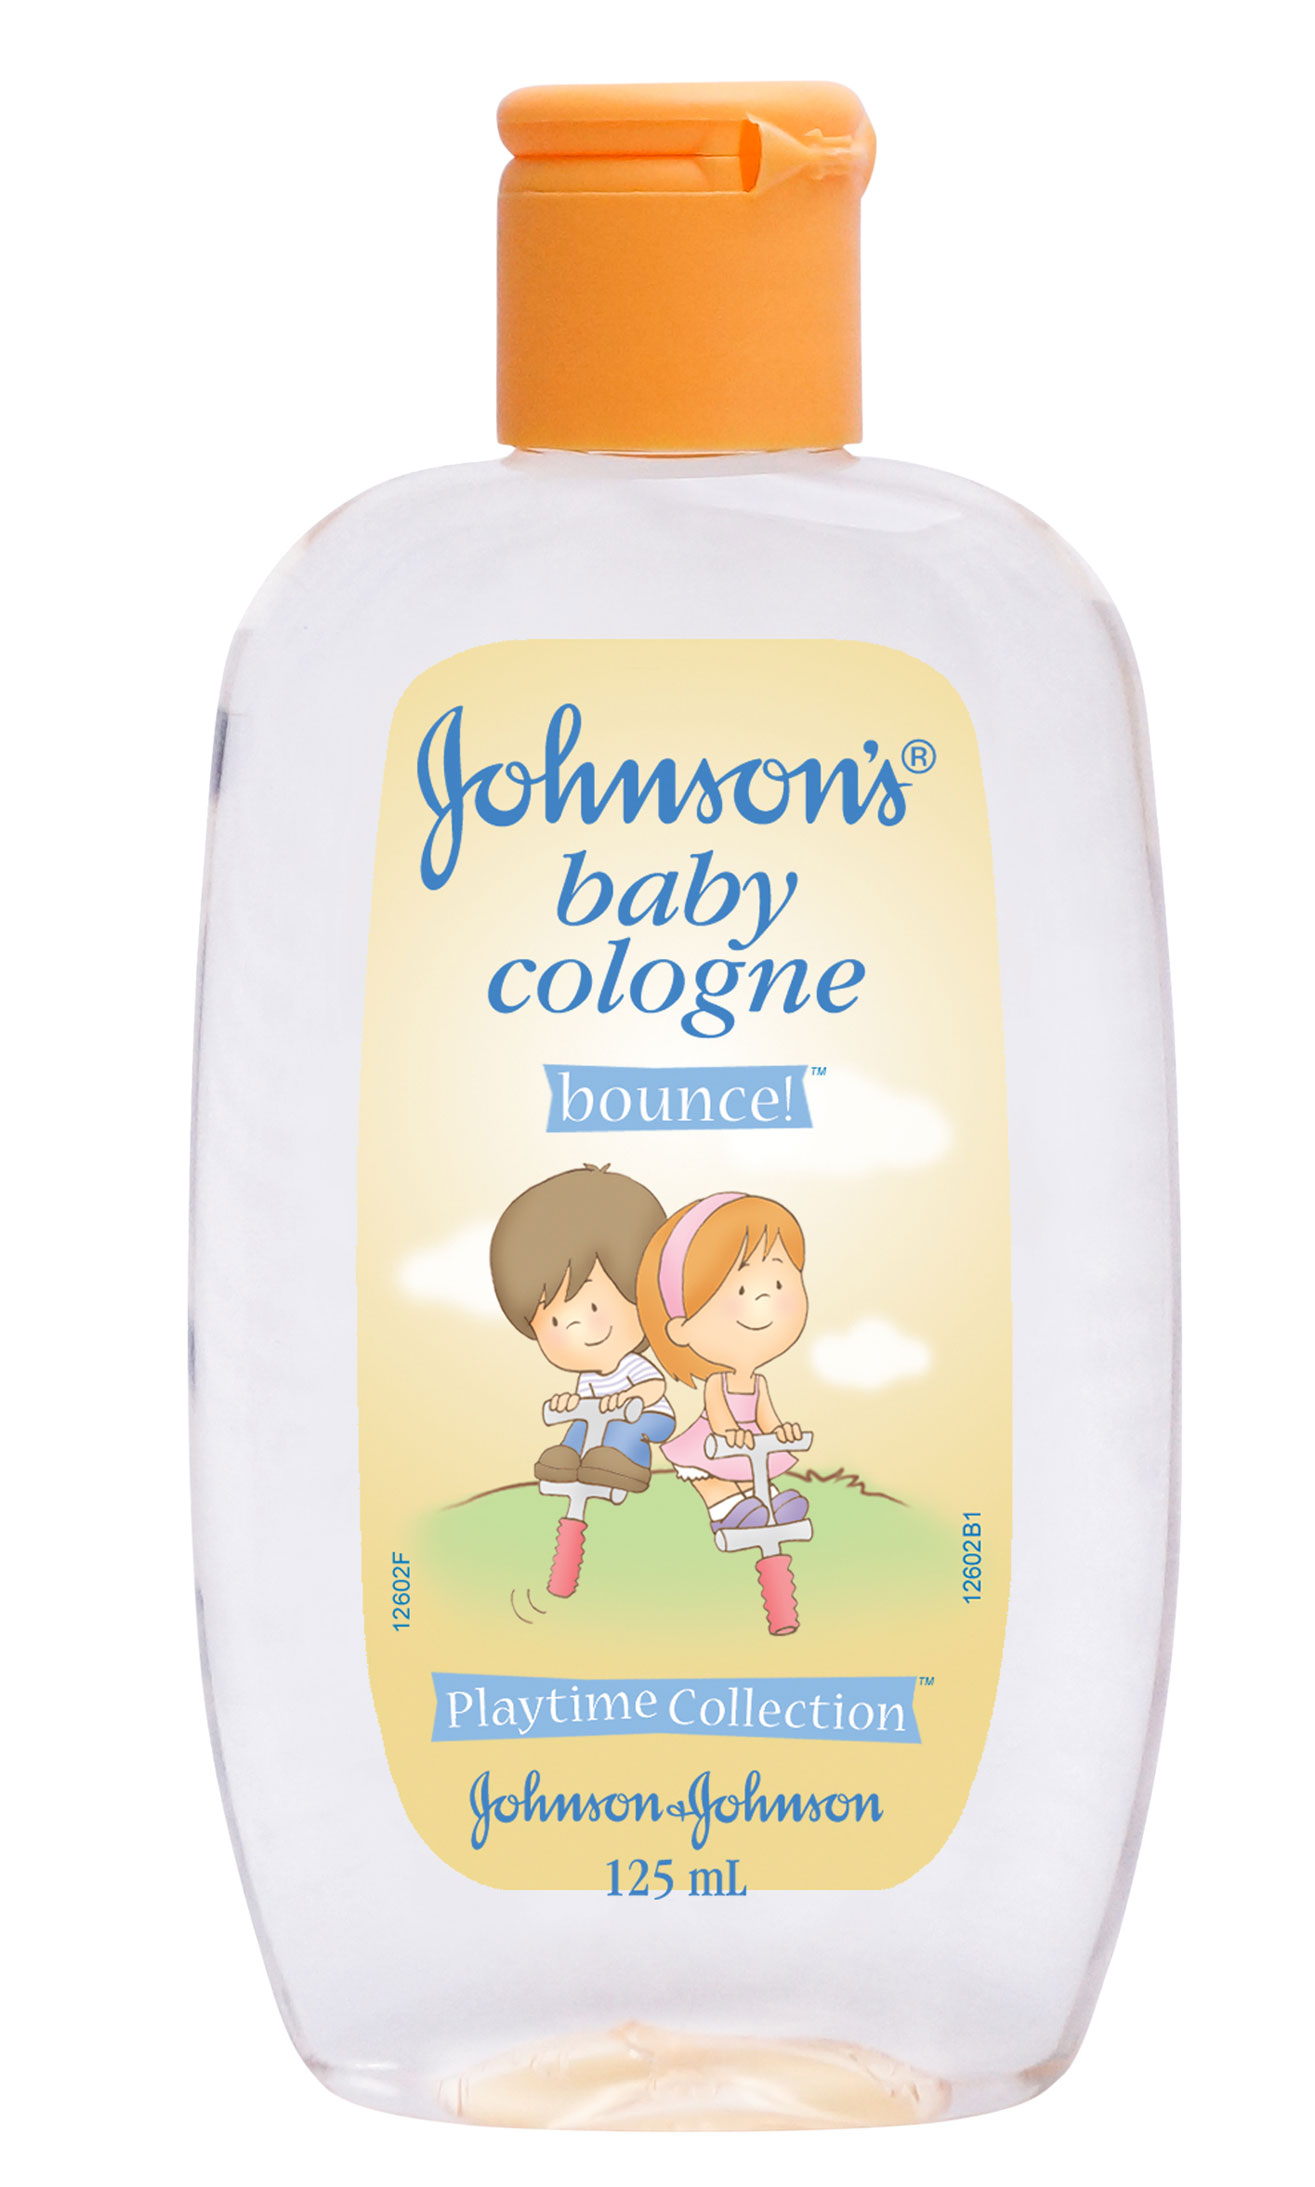 johnson johnson in philippines Start a career with johnson & johnson - careers overview and internship opportunities learn about j&j, benefits programs, and how to apply for jobs.